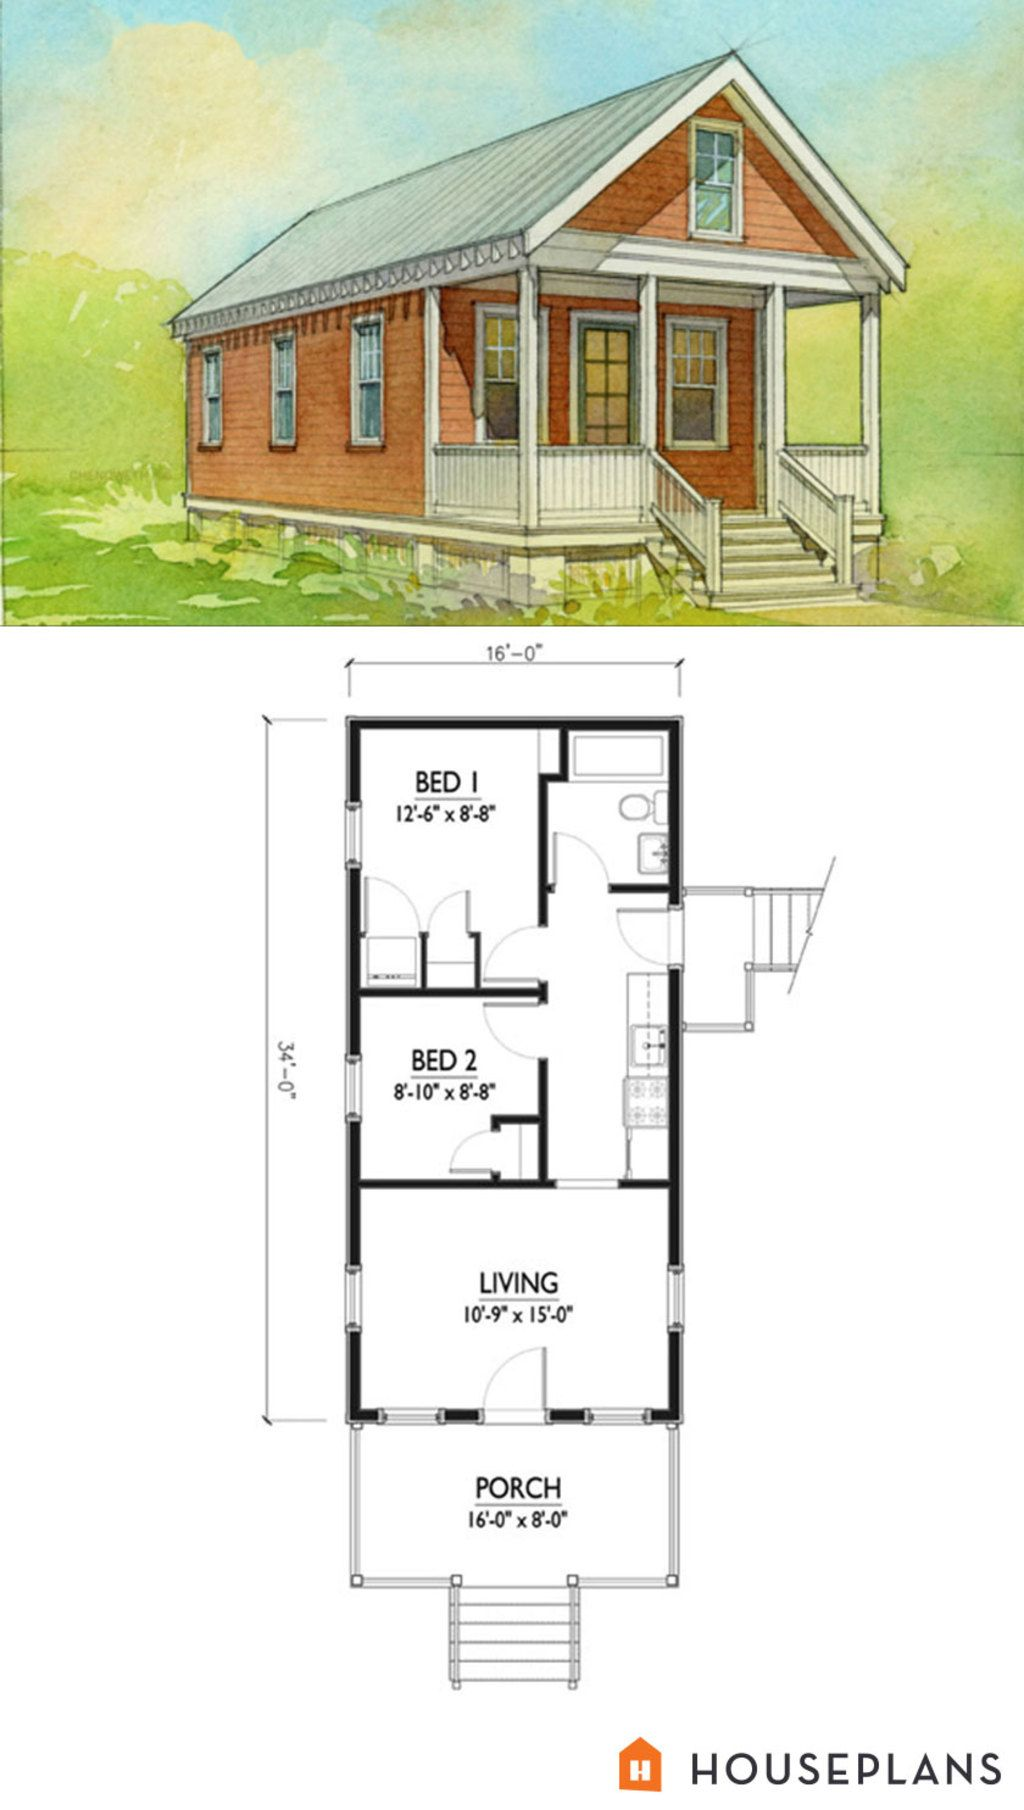 small katrina cottage floor plan and elevation 2 br houseplan number 514 5 - Katrina Cottage Plans